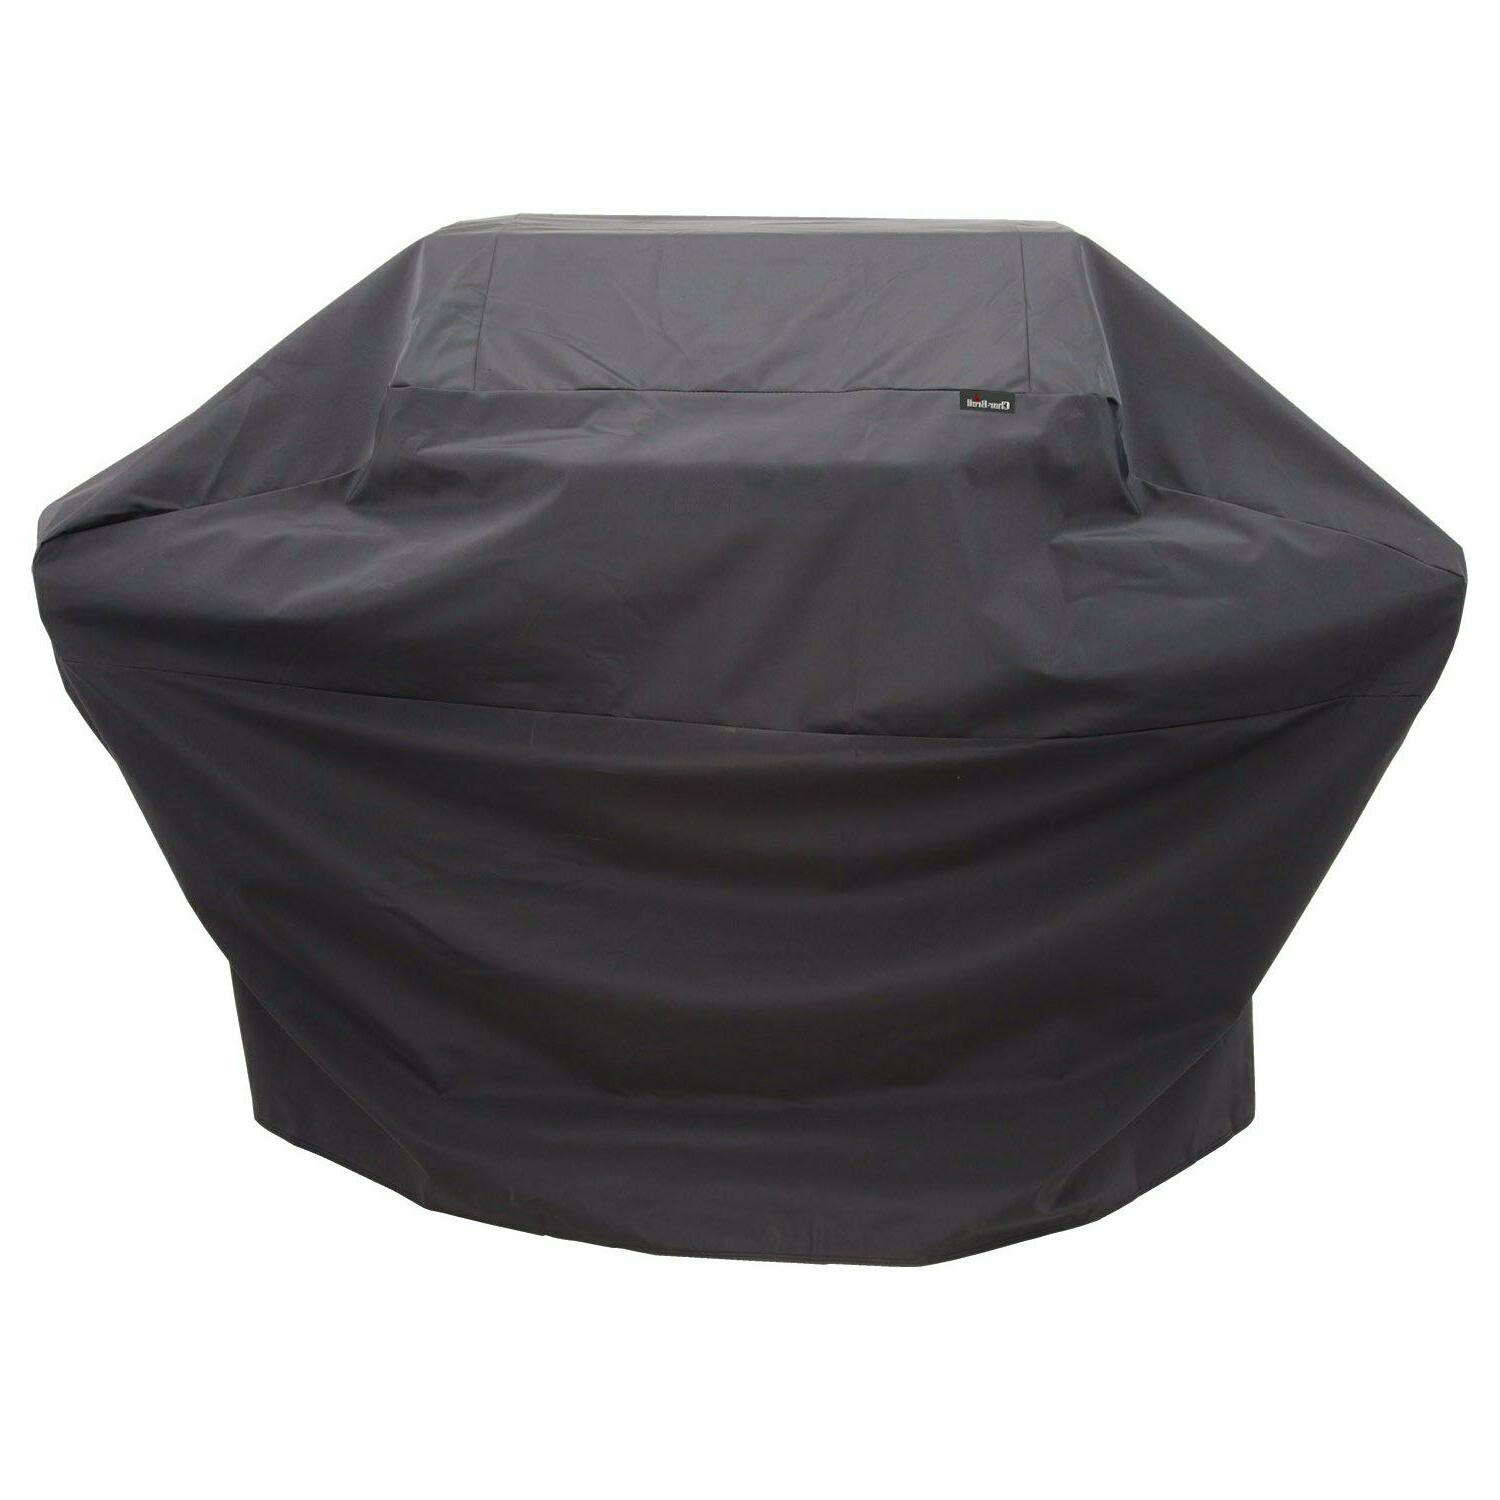 Char-Broil Performance Grill Cover, 3-4 Burner: Large